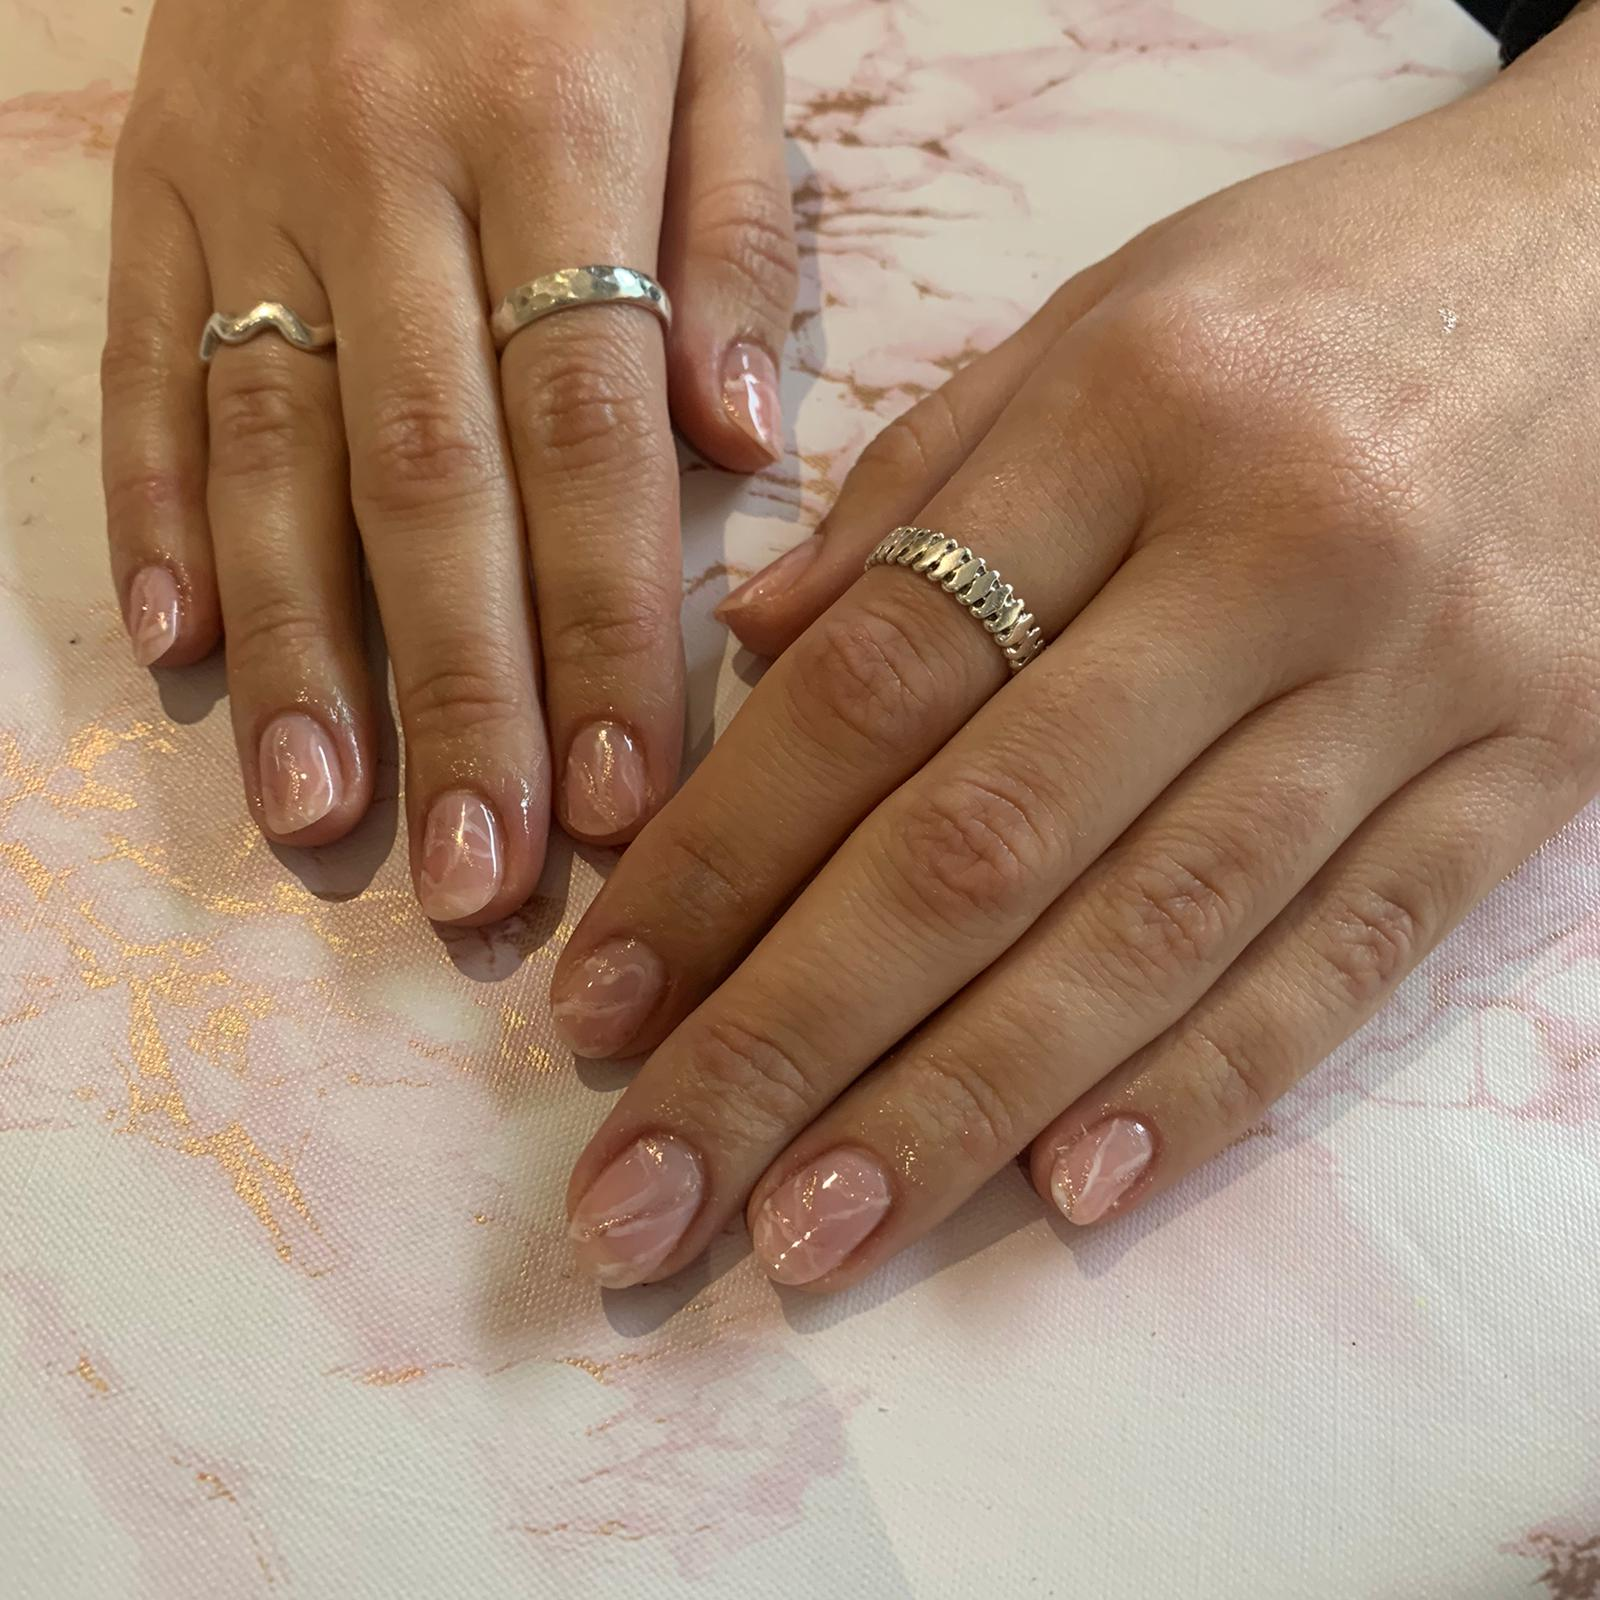 nails by natalie rose london mobile manicure autumn vibes nails art nails by natalie rose london mobile manicure autumn vibes nails art Rose quartz